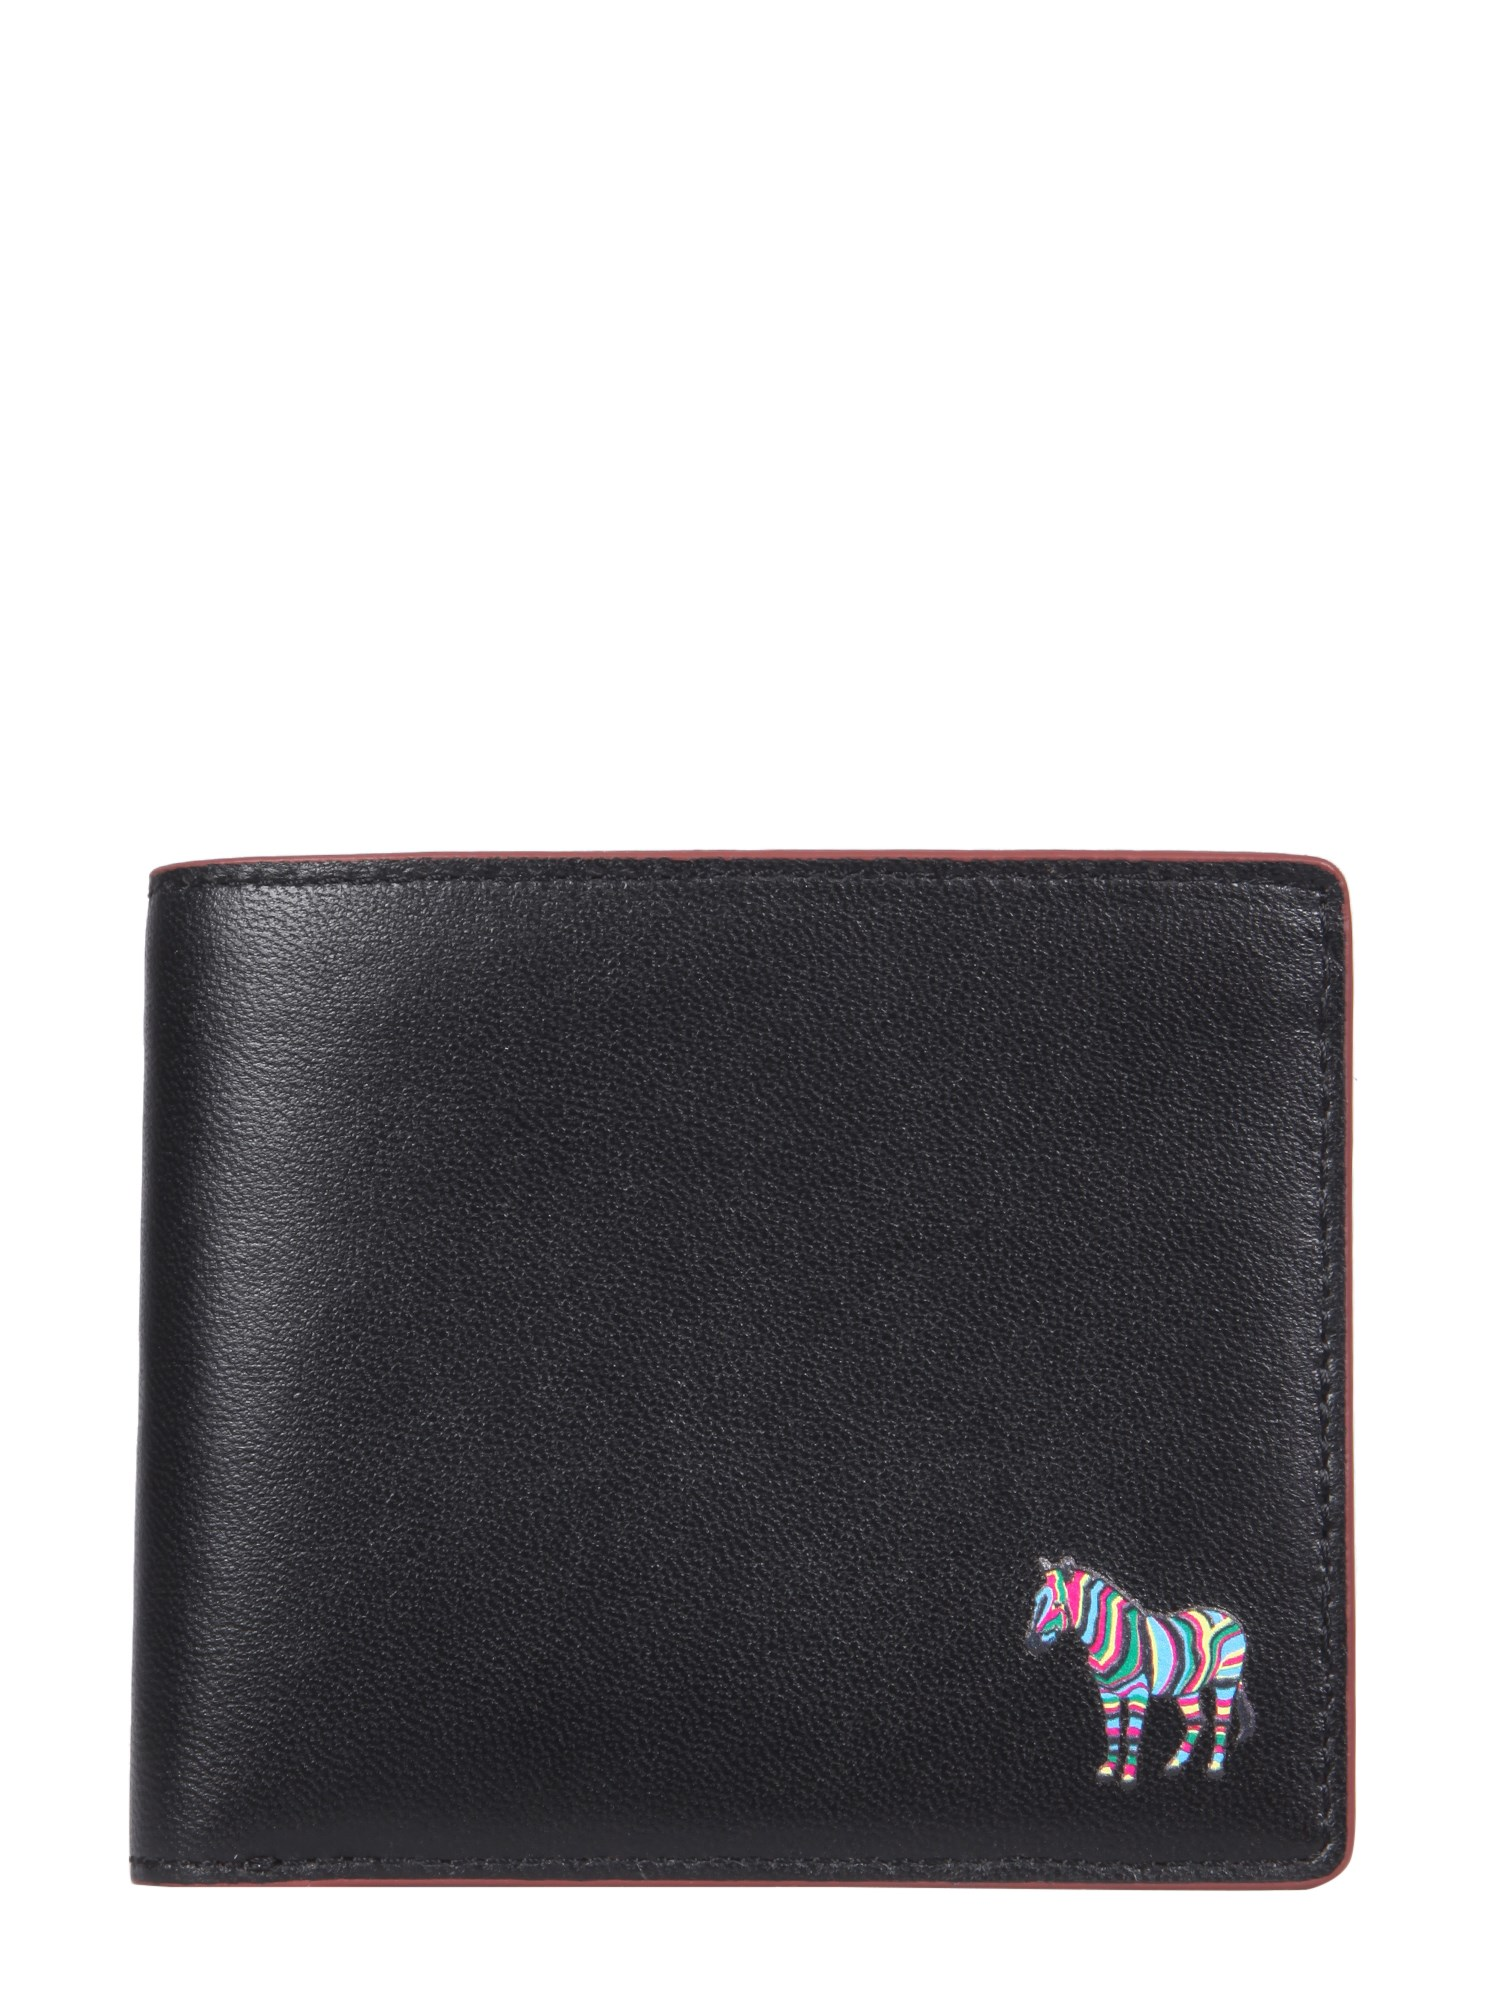 ps by paul smith leather bifold wallet